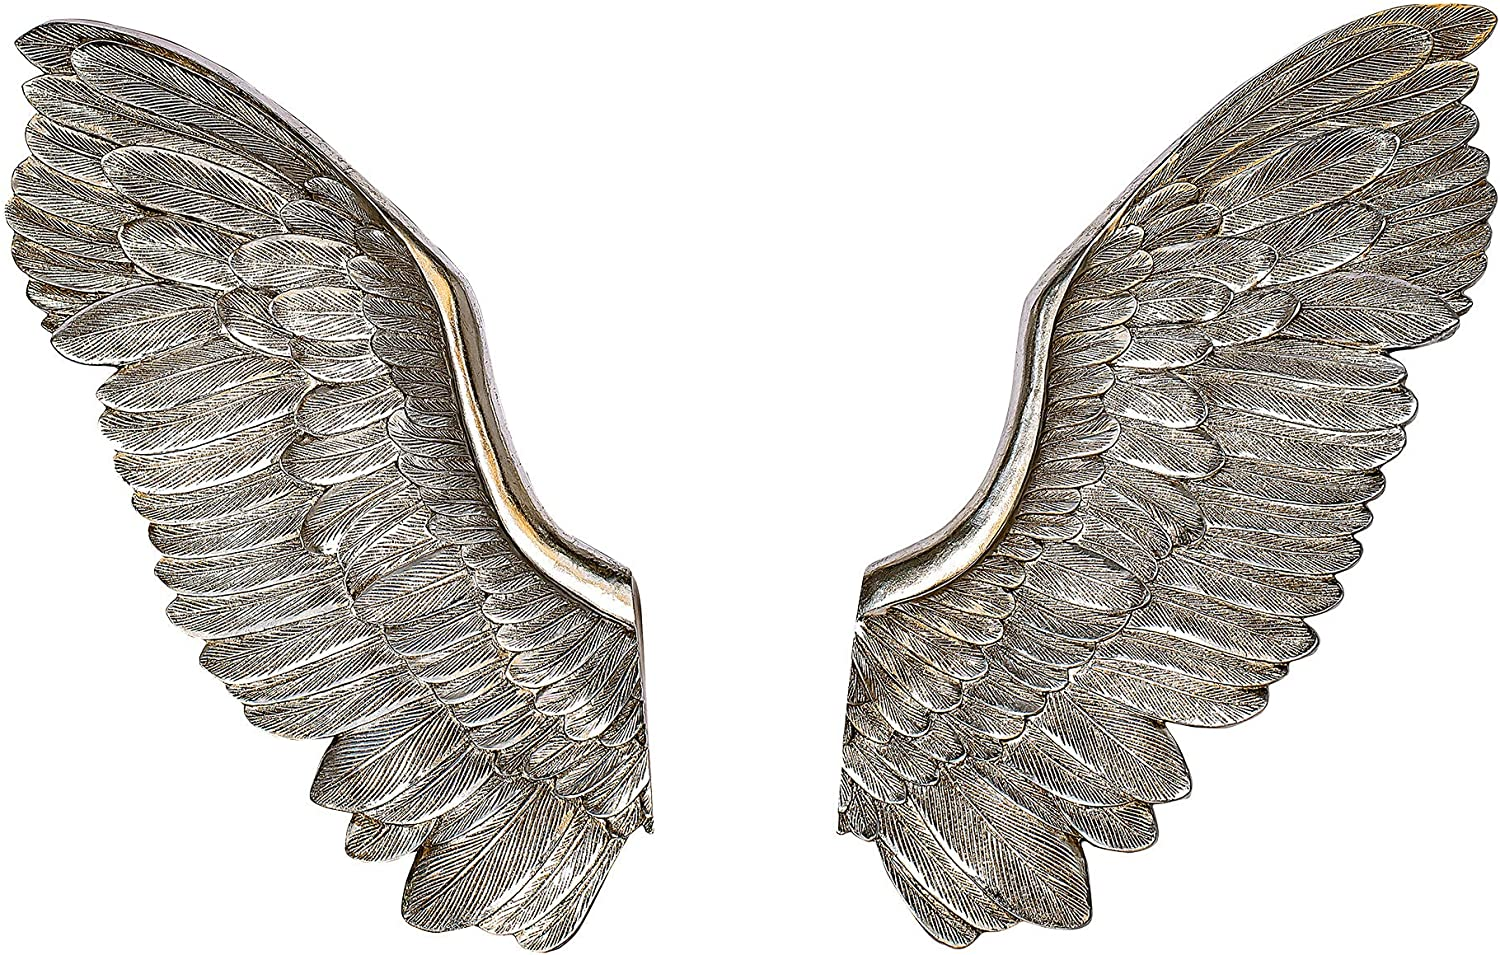 NRMEI Large Size Wall Hanging Wings Grand Angel Wings 2 Piece Set Vintage Style Bas Relief Sculptures Hand Crafted Wall Decor Artisinal Design(32''Tall Champagne Wings)